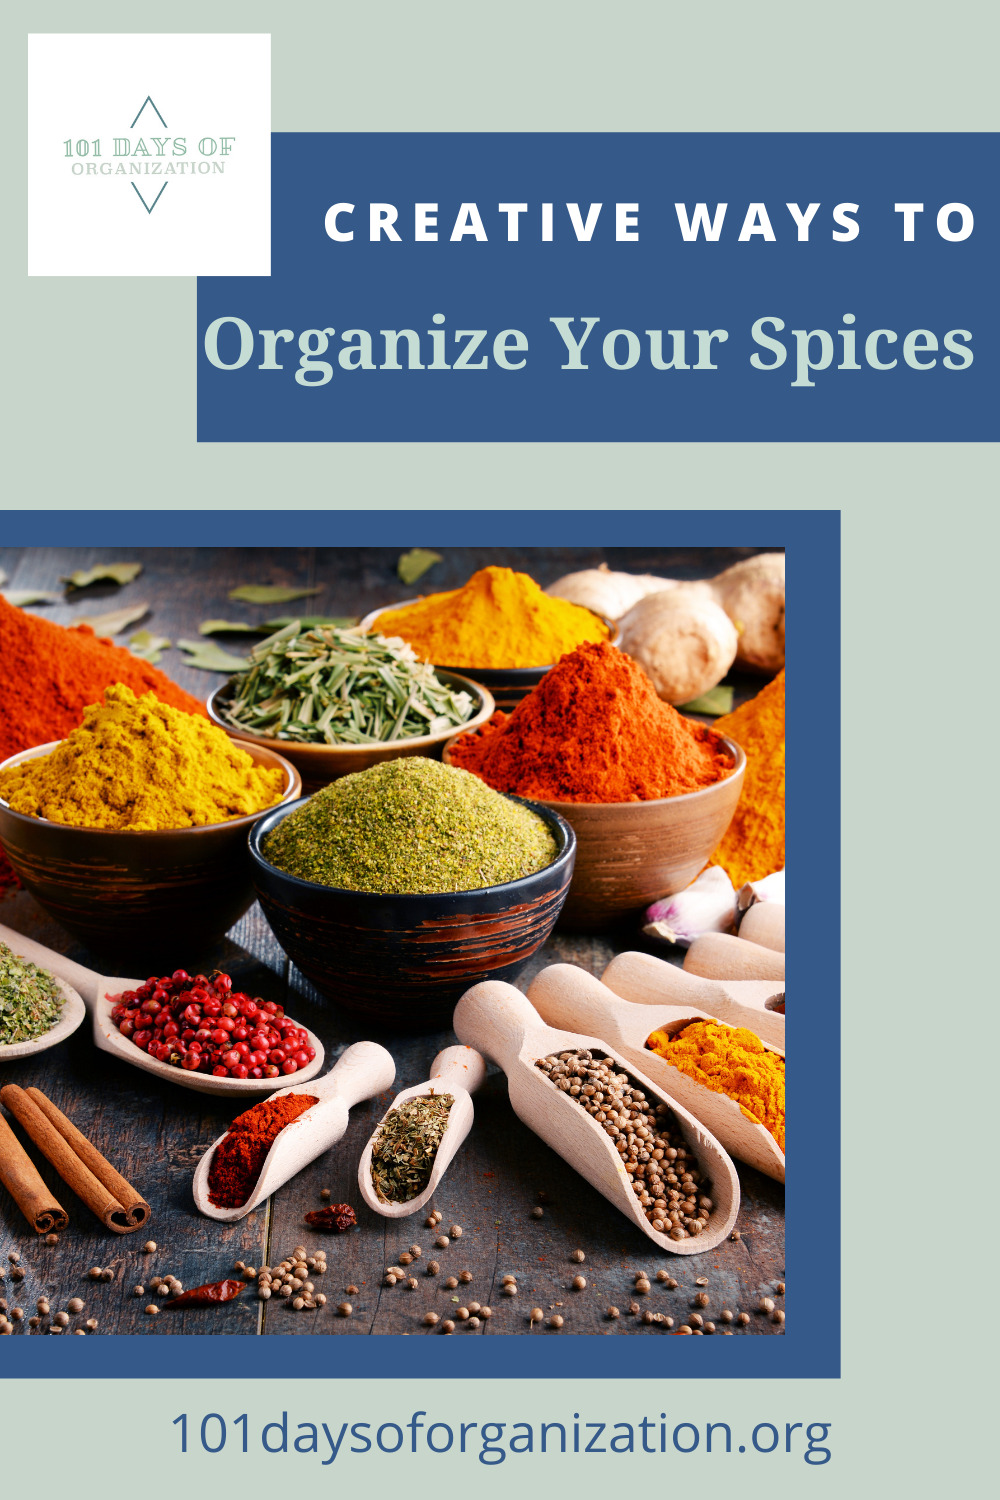 101daysoforganization.org will help you get everything in your life clean, organized, and clutter-free! Find creative solutions to even the trickiest messes. Check out these genius ways you can store your spices to keep your kitchen tidy!